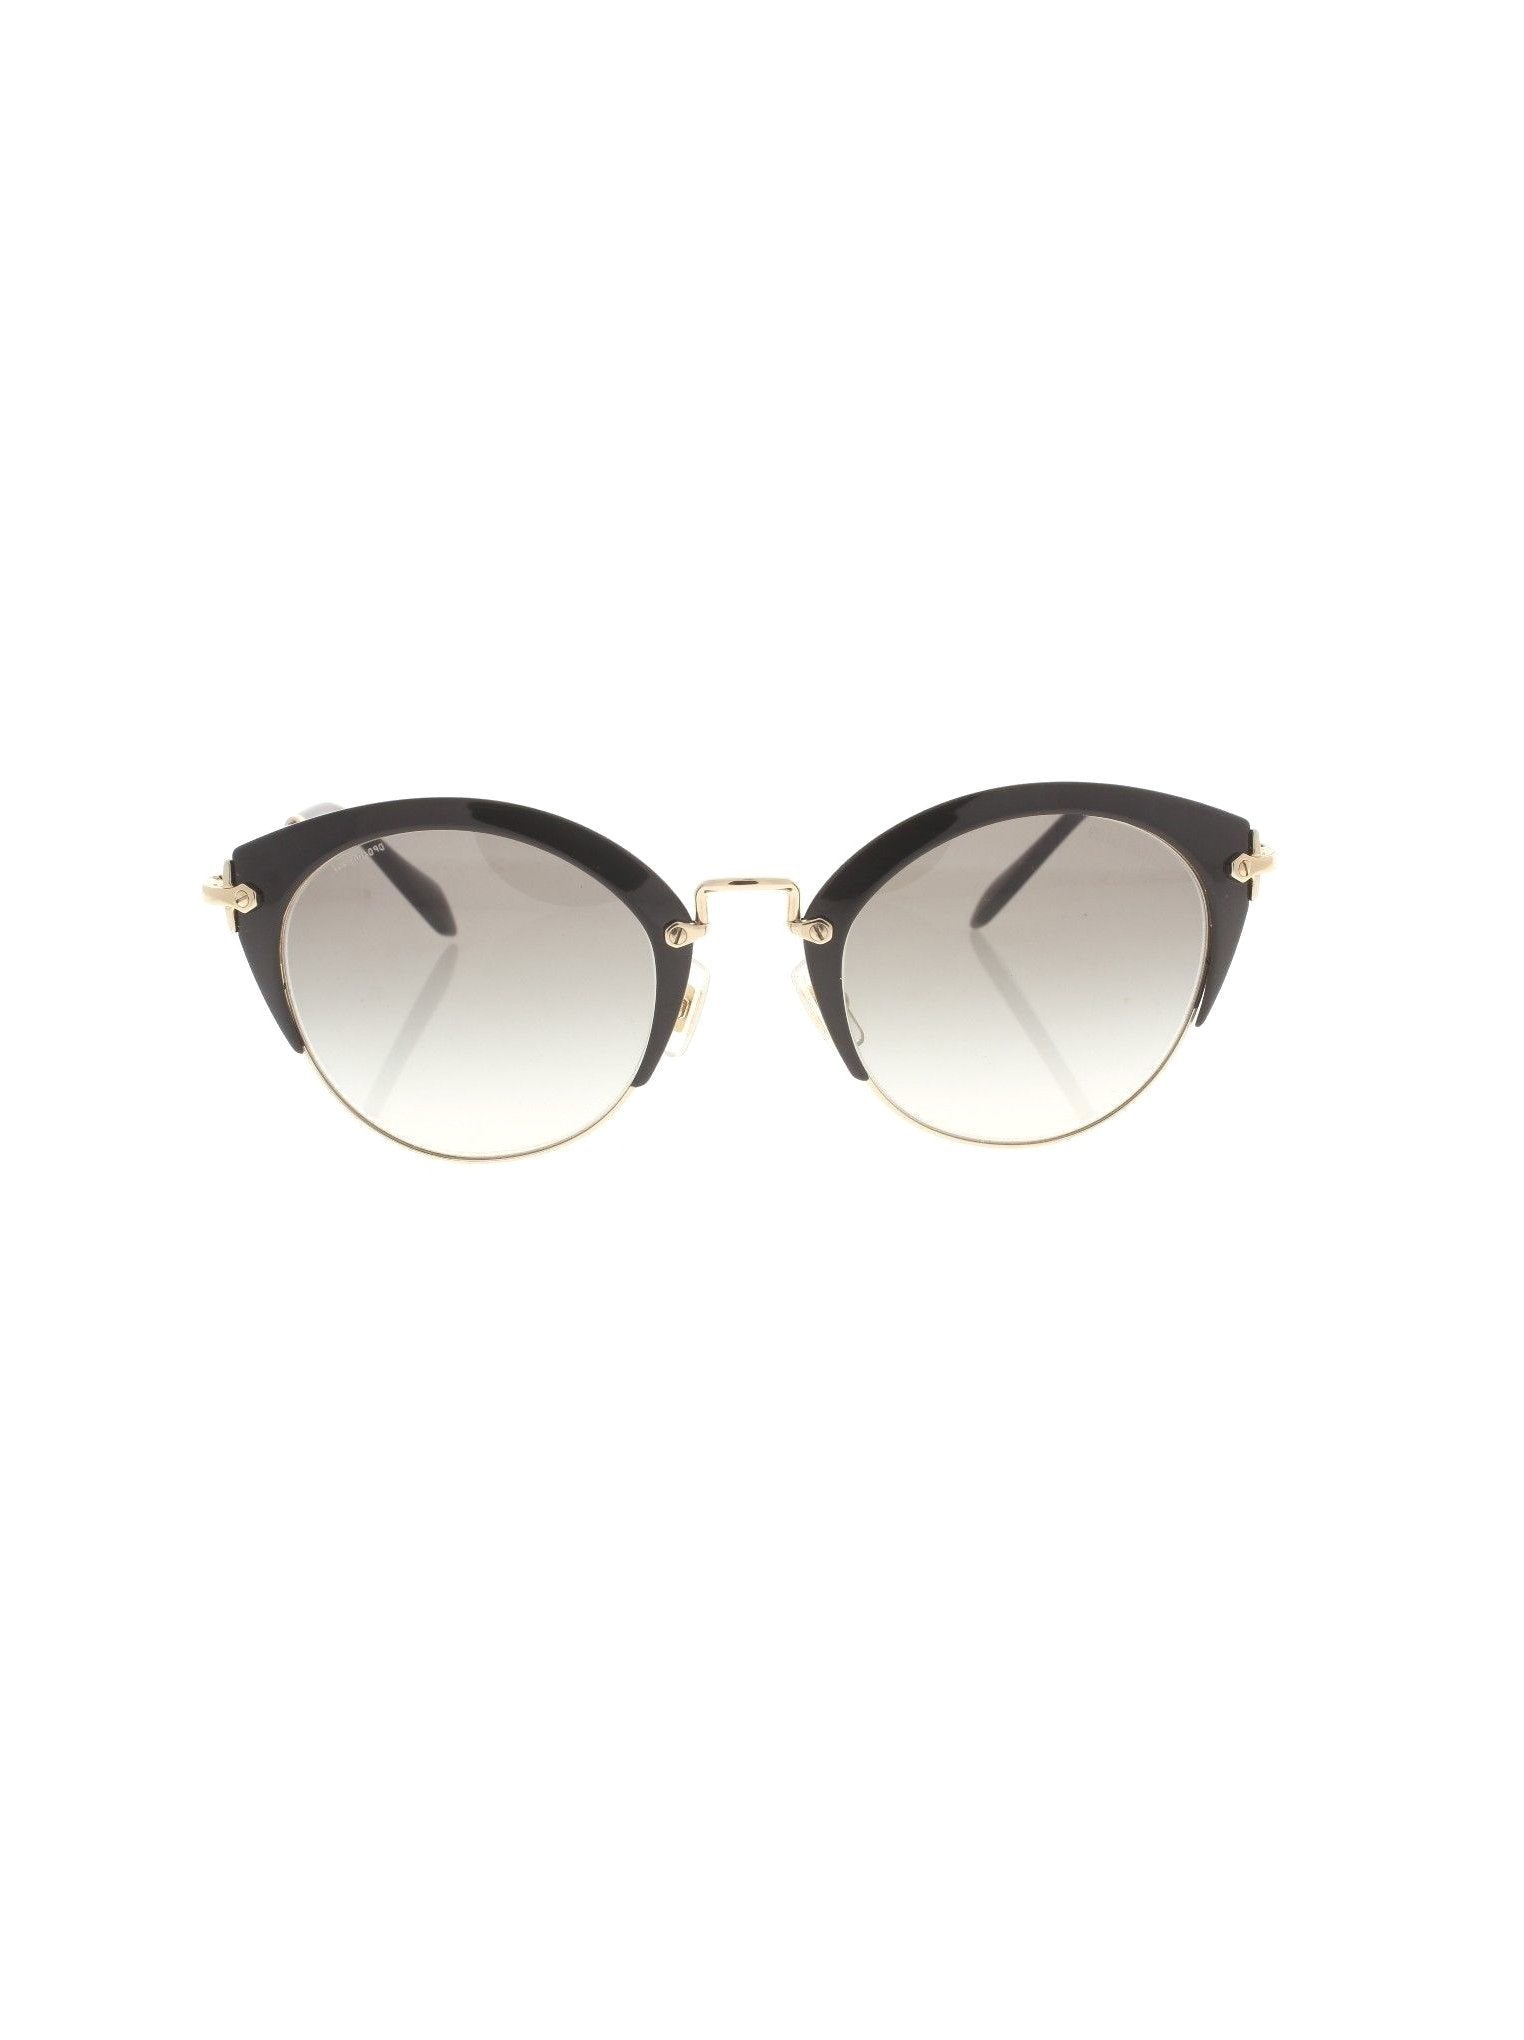 a91b3de5567 Miu Miu - Cat Eye SMU 53R 1AB-0A7 Sunglasses - Matte Black Gold